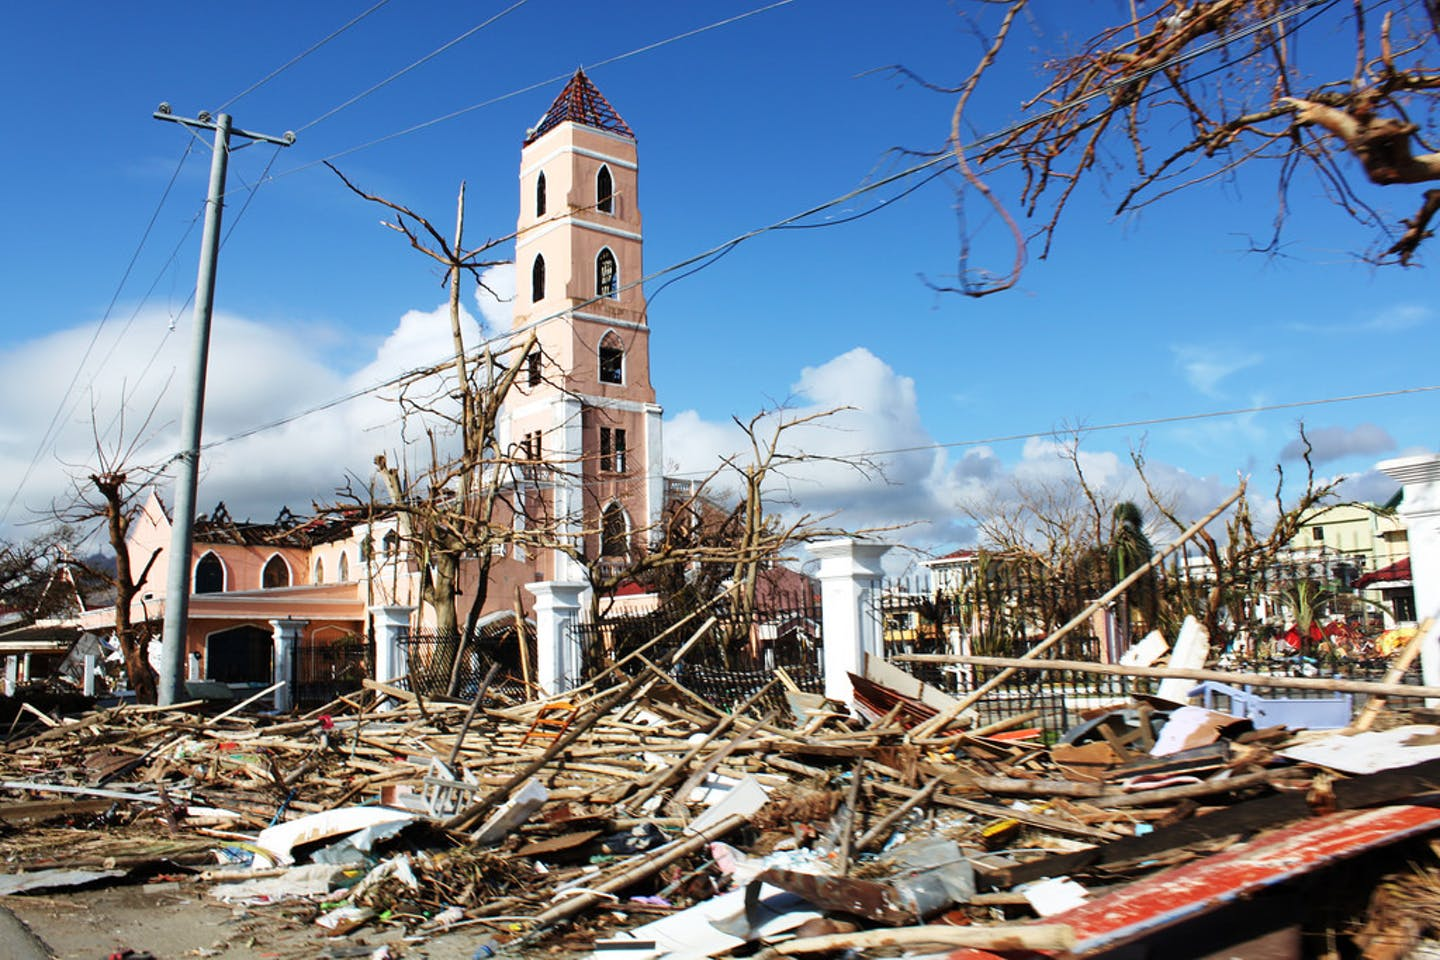 Tacloban city in the Philippines after the destruction wrought by Typhoon Haiyan in 2013